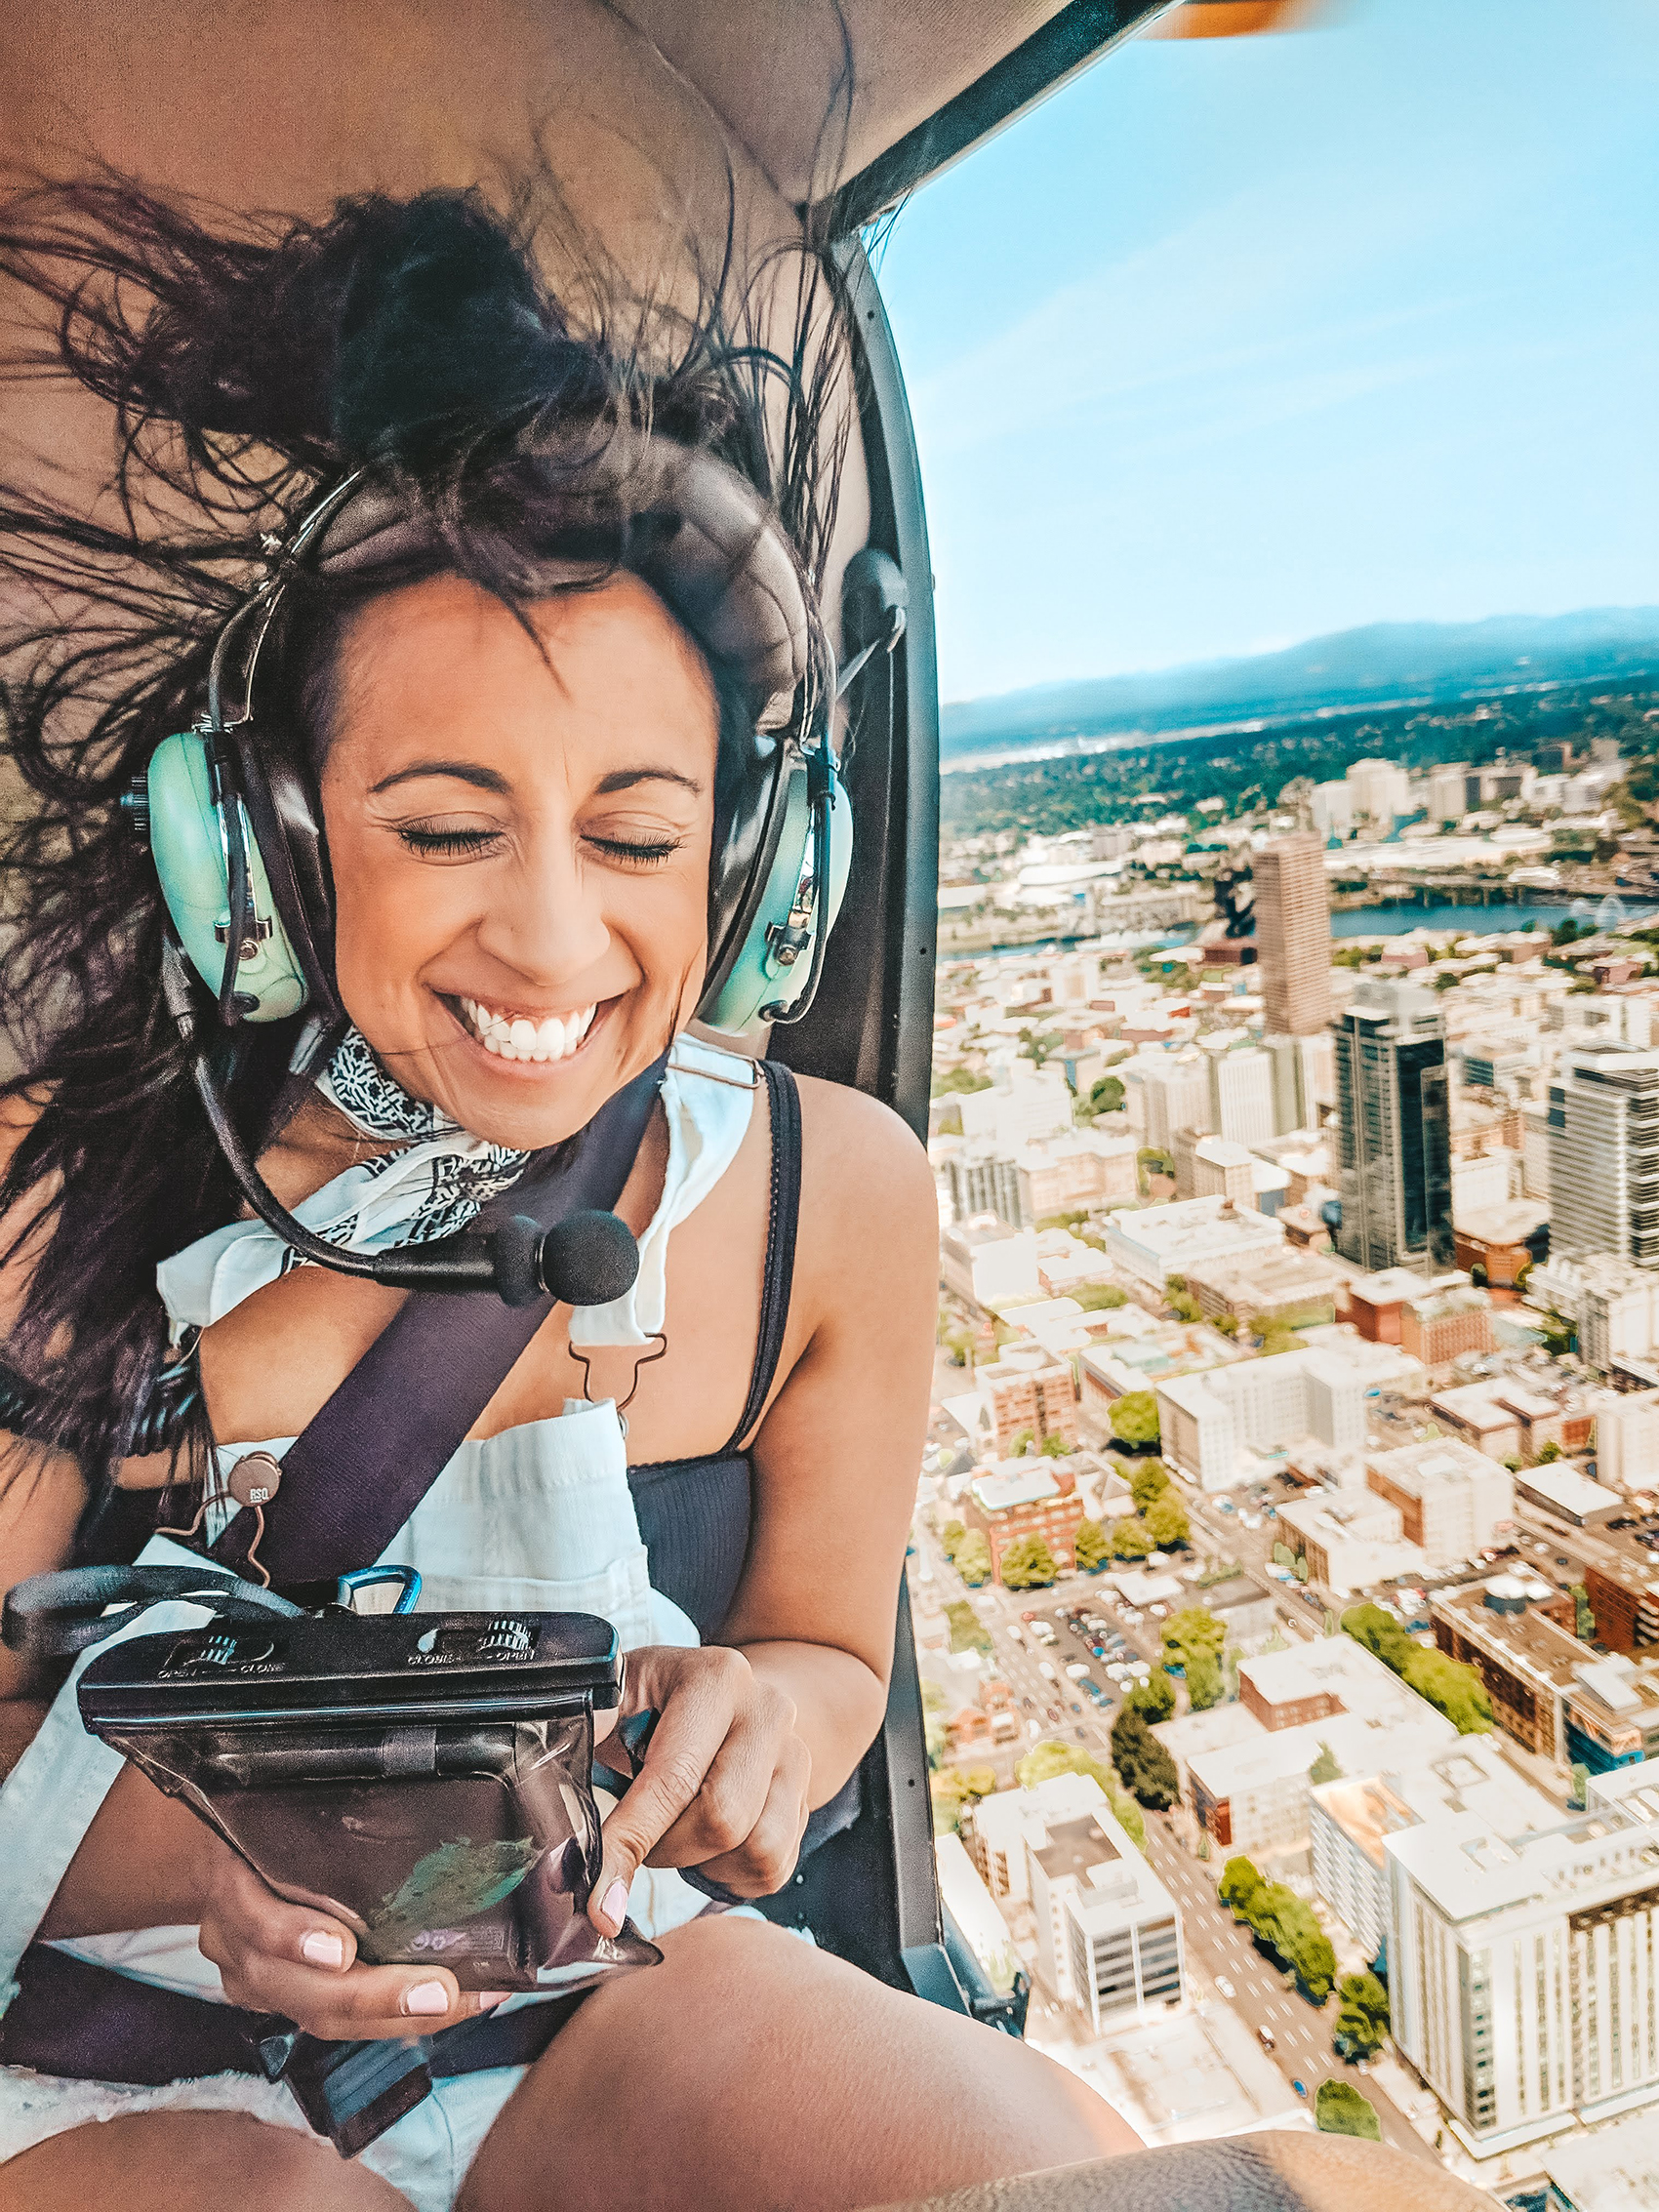 Oregon-Helicopters-smiling-ride.jpg